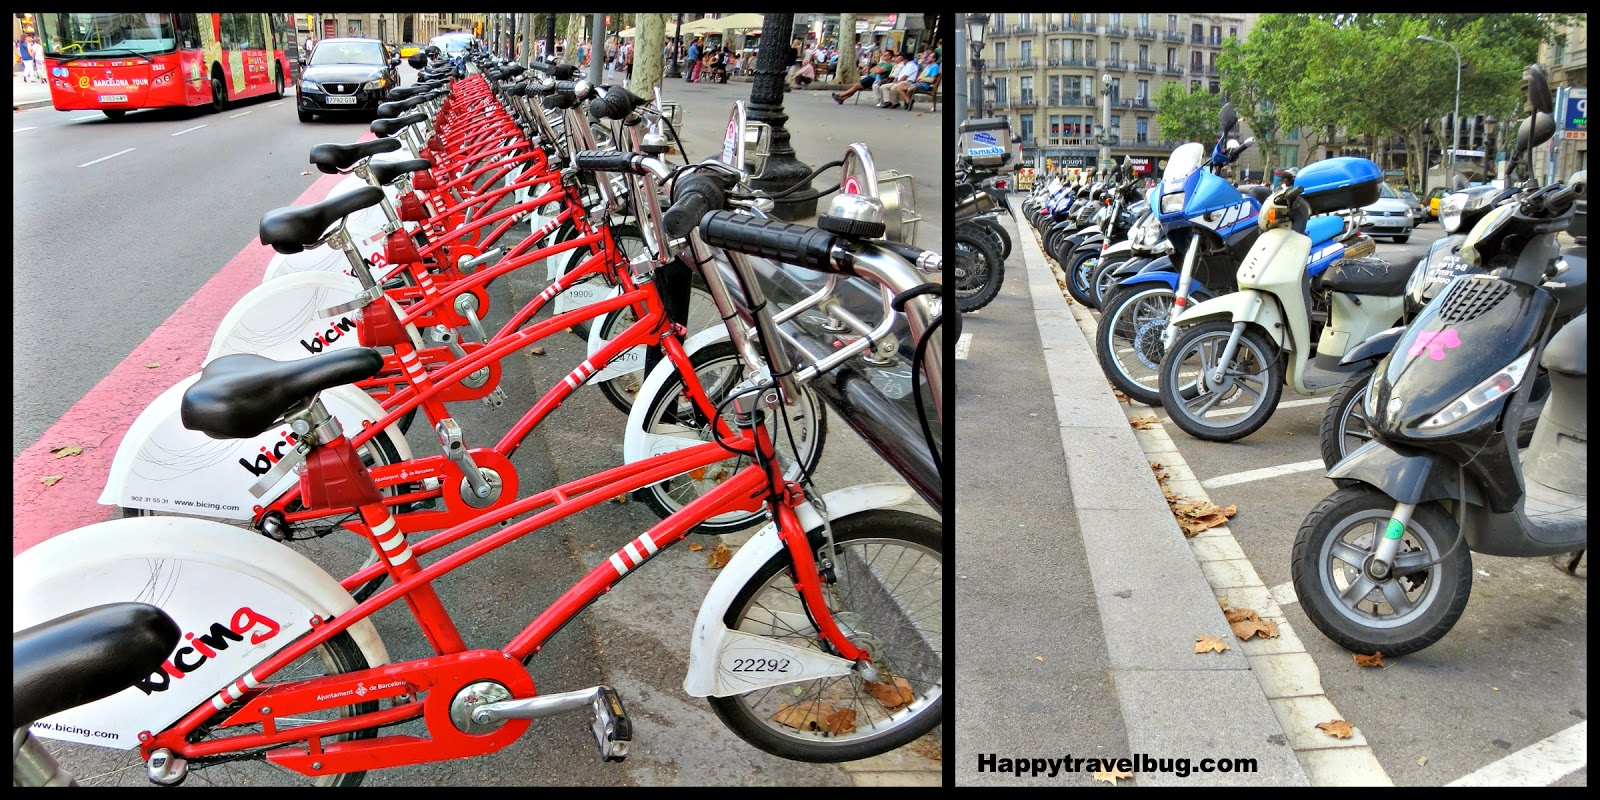 Bikes on the Catalunya Plaza in Barcelona, Spain